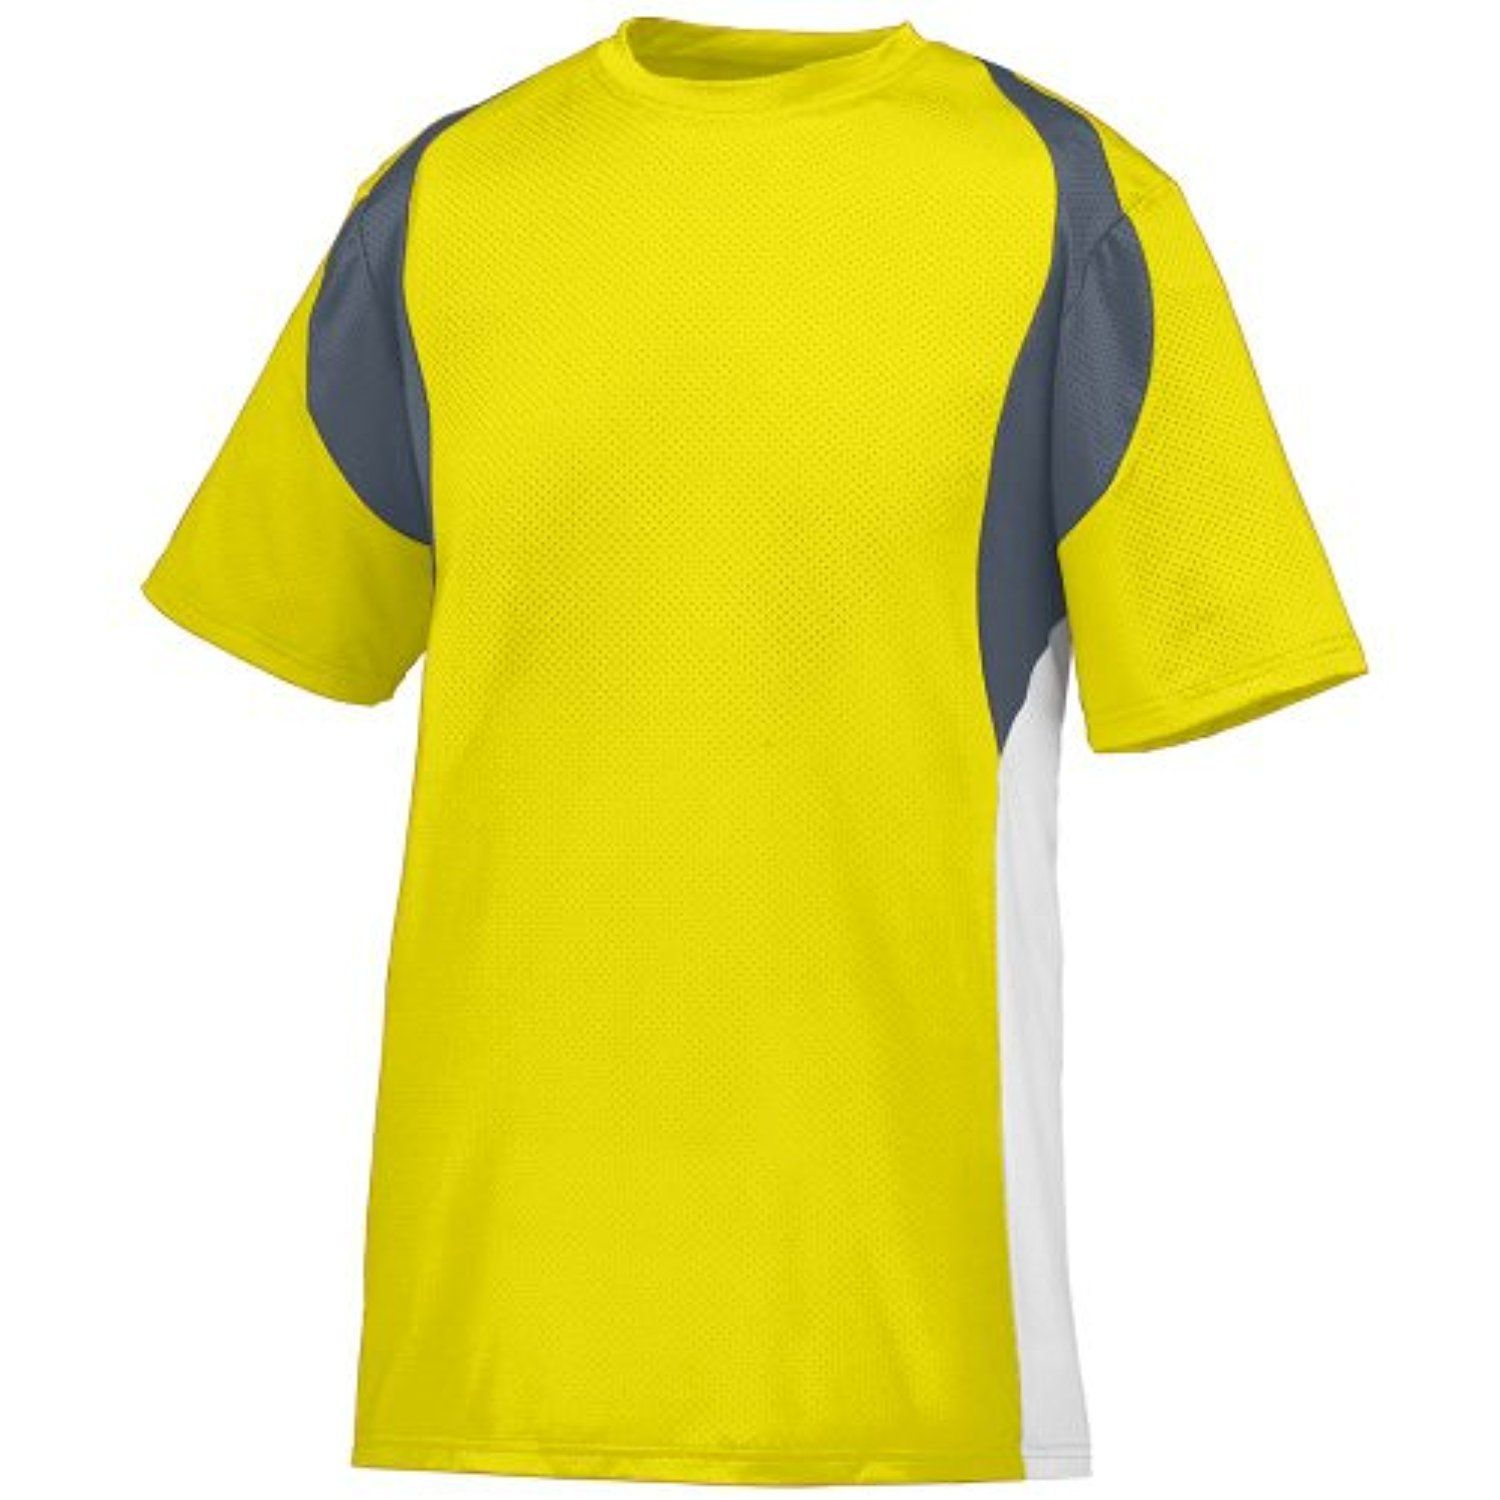 Style 1516 Youth Quasar Jersey (XSMALL, POWER YELLOW